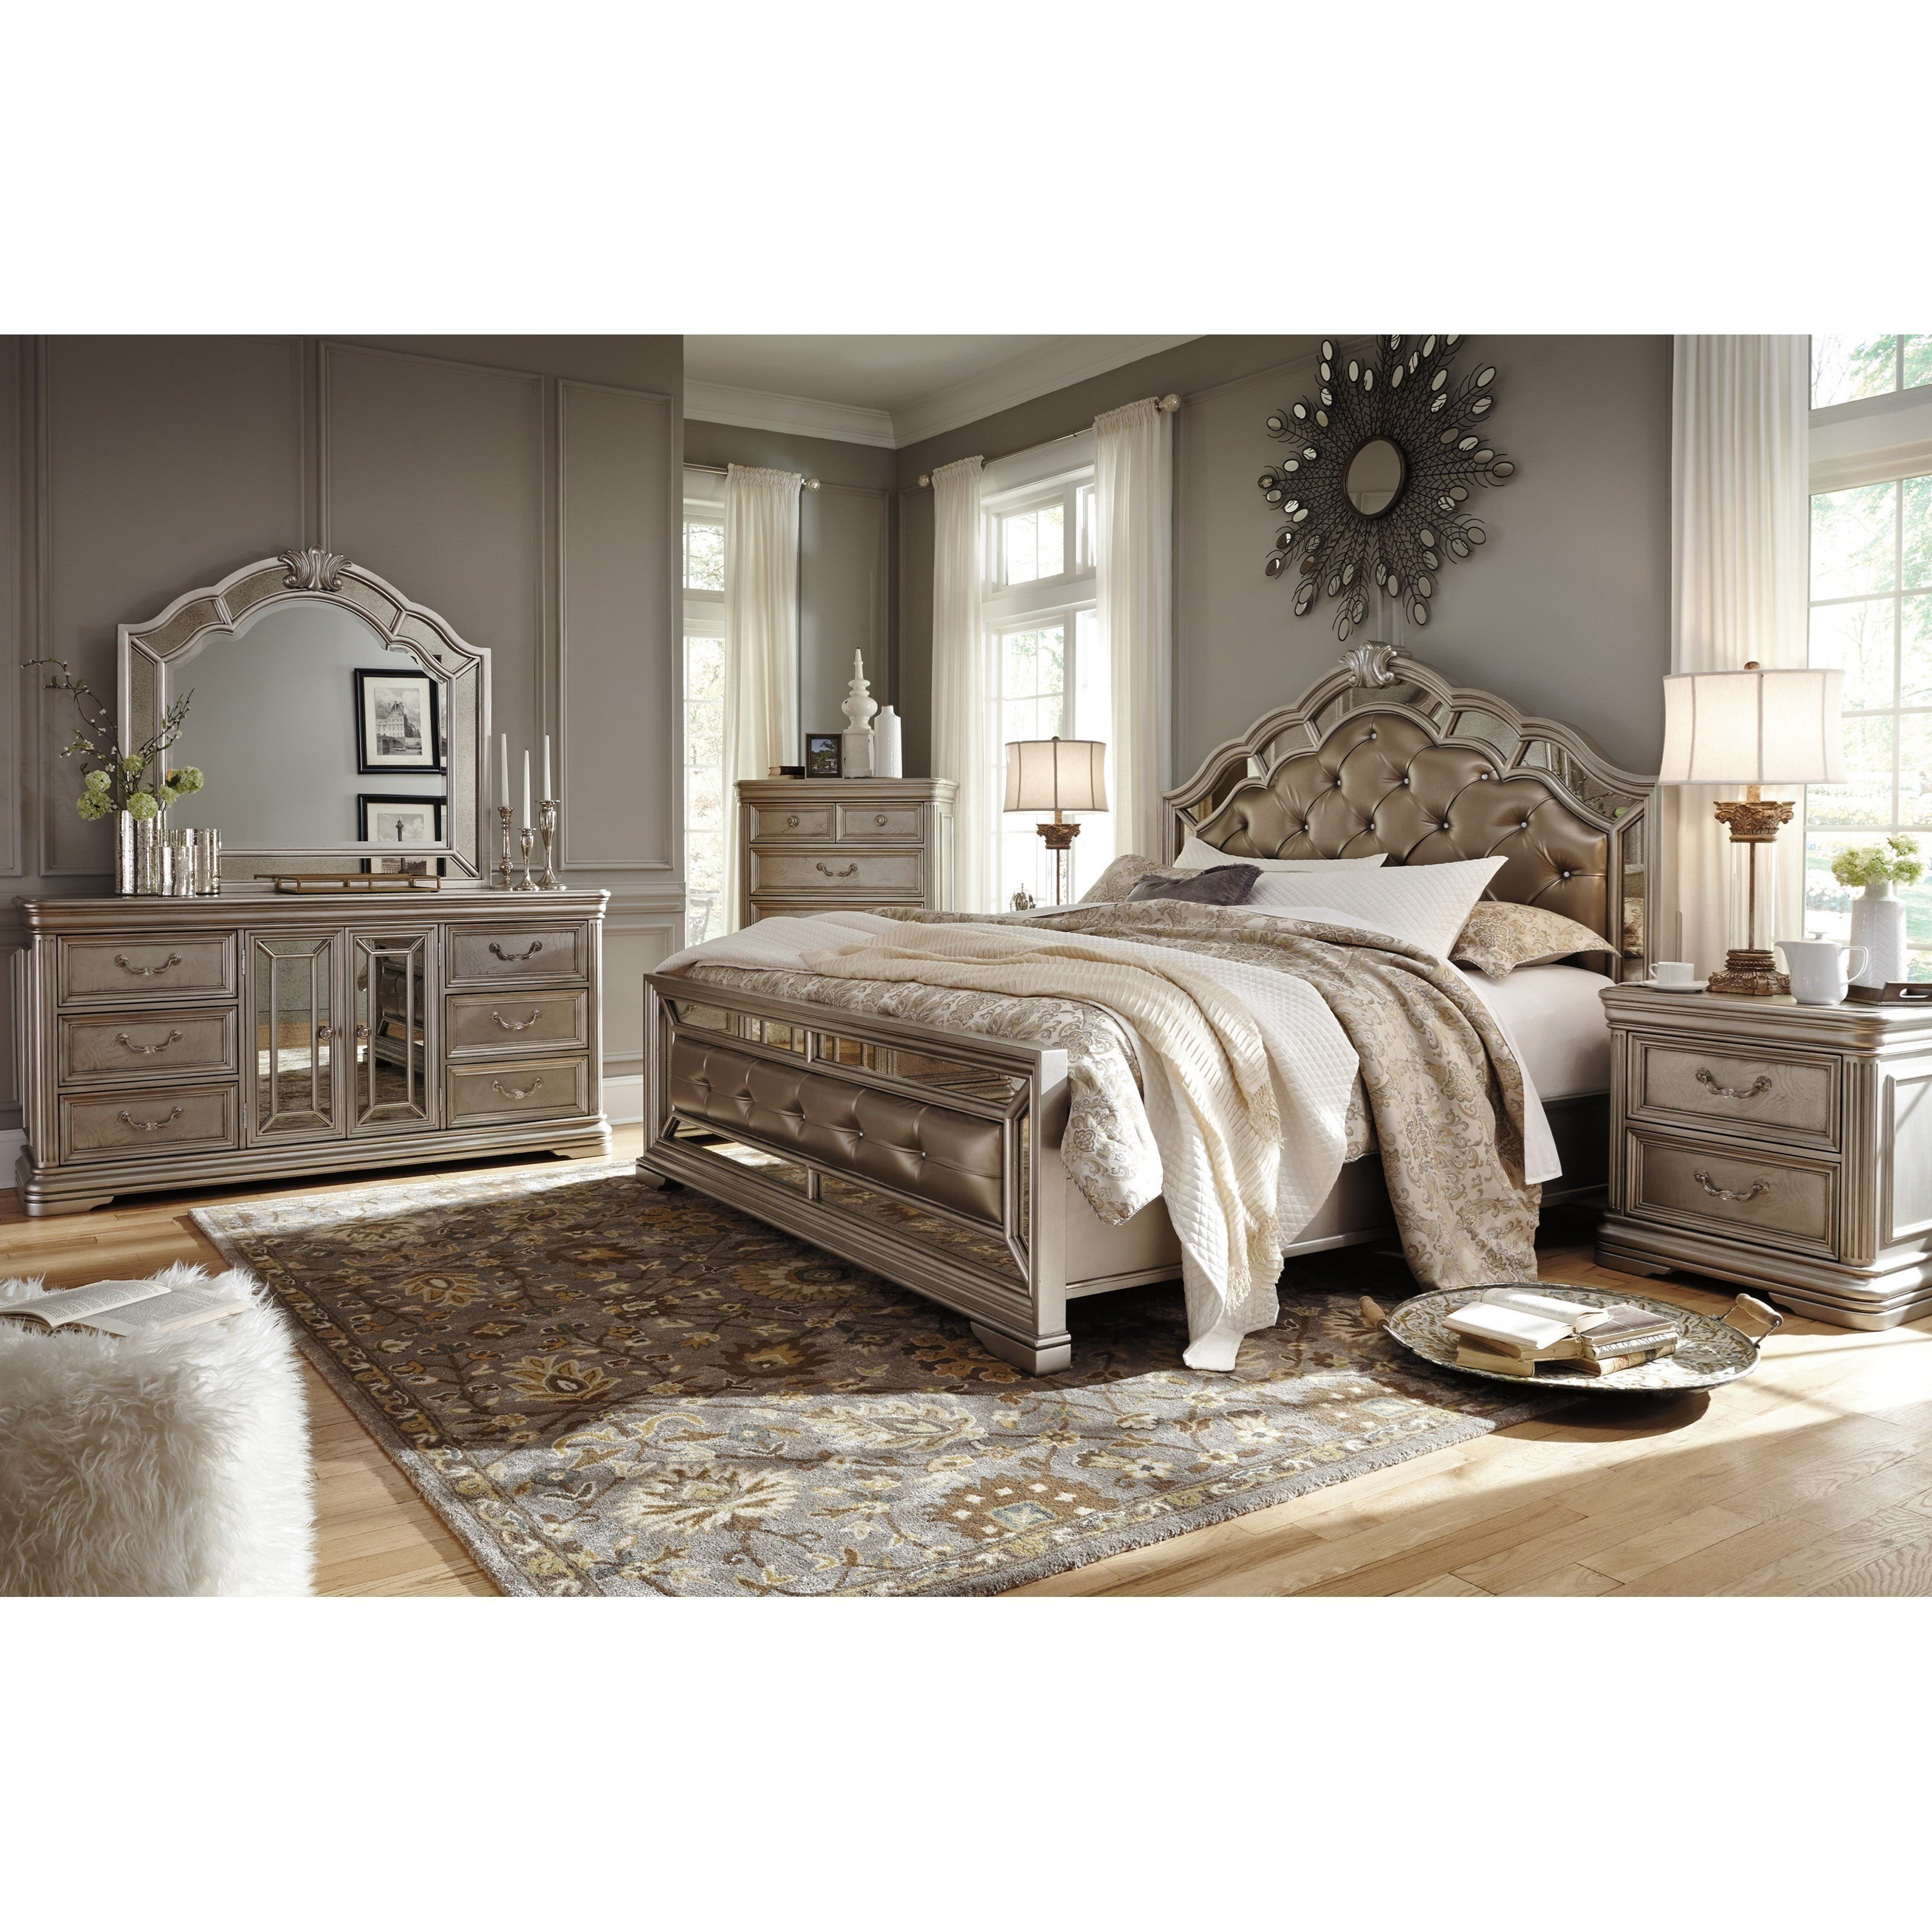 Best Signature Design By Ashley Birlanny King Bedroom Group With Pictures